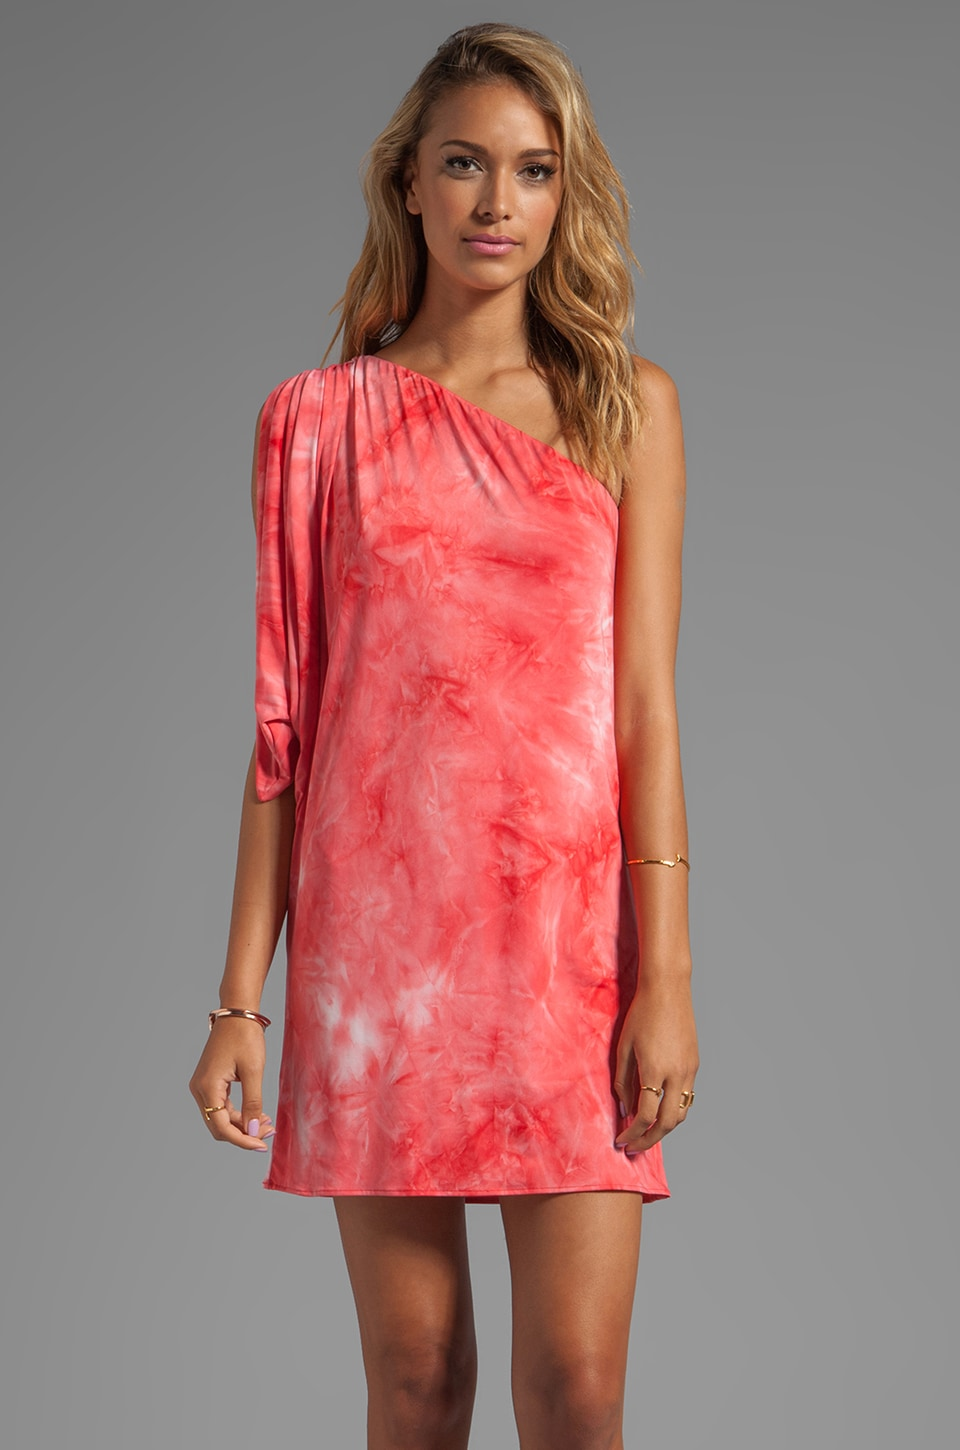 T-Bags LosAngeles One Shoulder Mini Dress in Coral Tie Dye